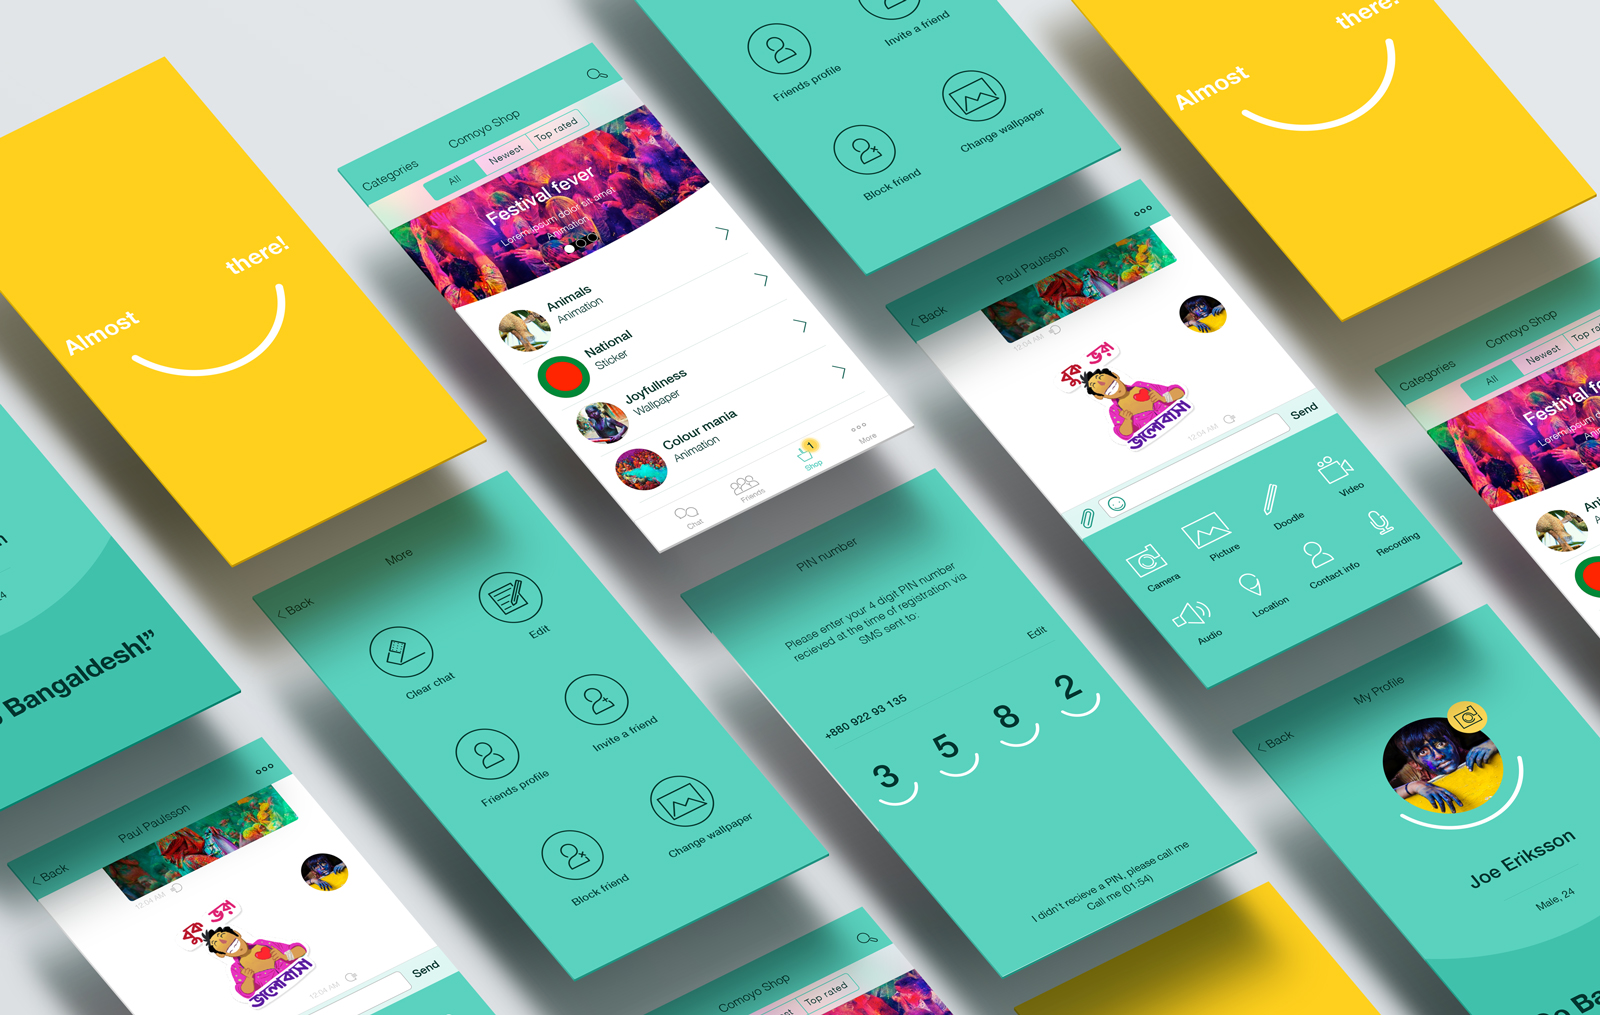 → Screens from the Comoyo App